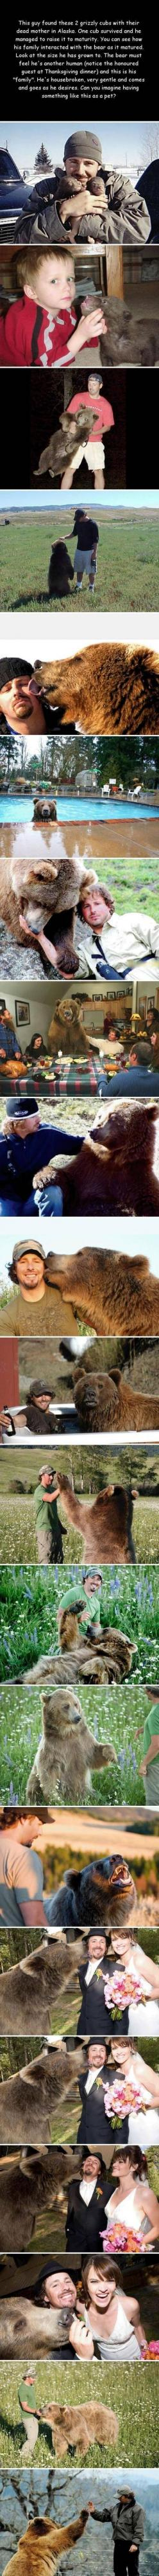 this dude has a freaking grizzly as his pet.: Humanity Restored, Sweet, Adorable Animals, Guy, Wild Animals, Pet Bear, Grizzly Bears